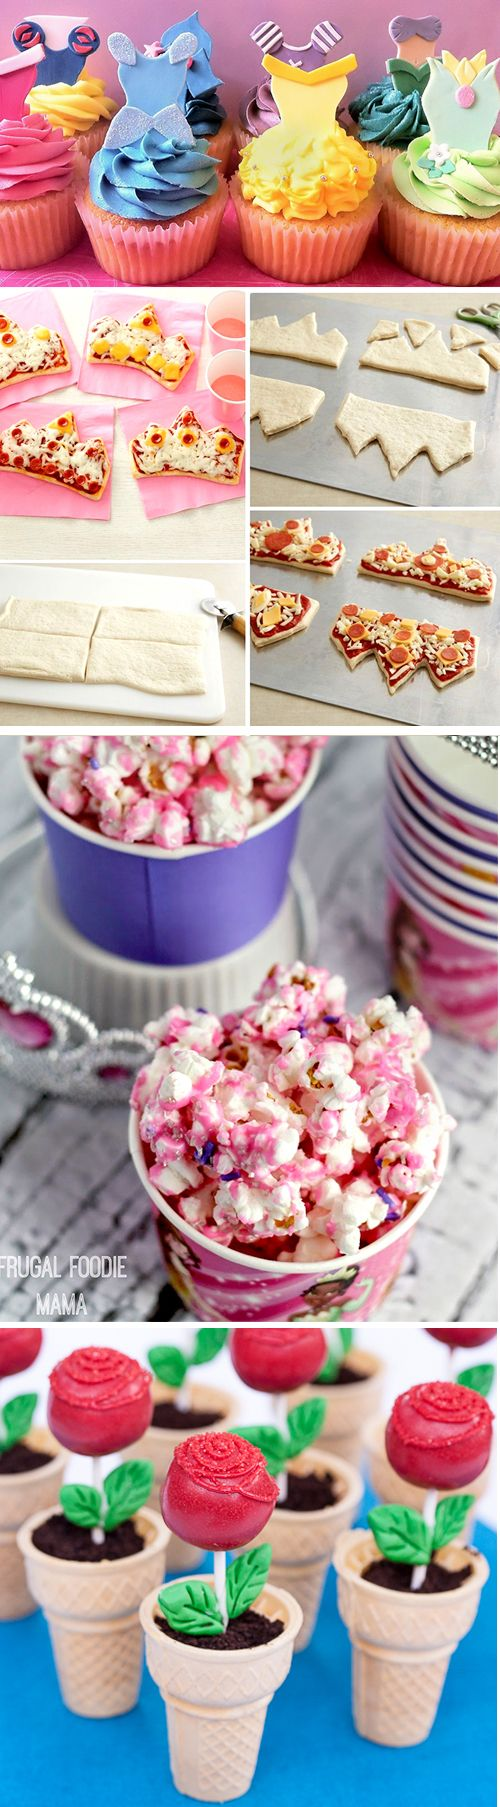 A big list of Disney princess party food ideas!